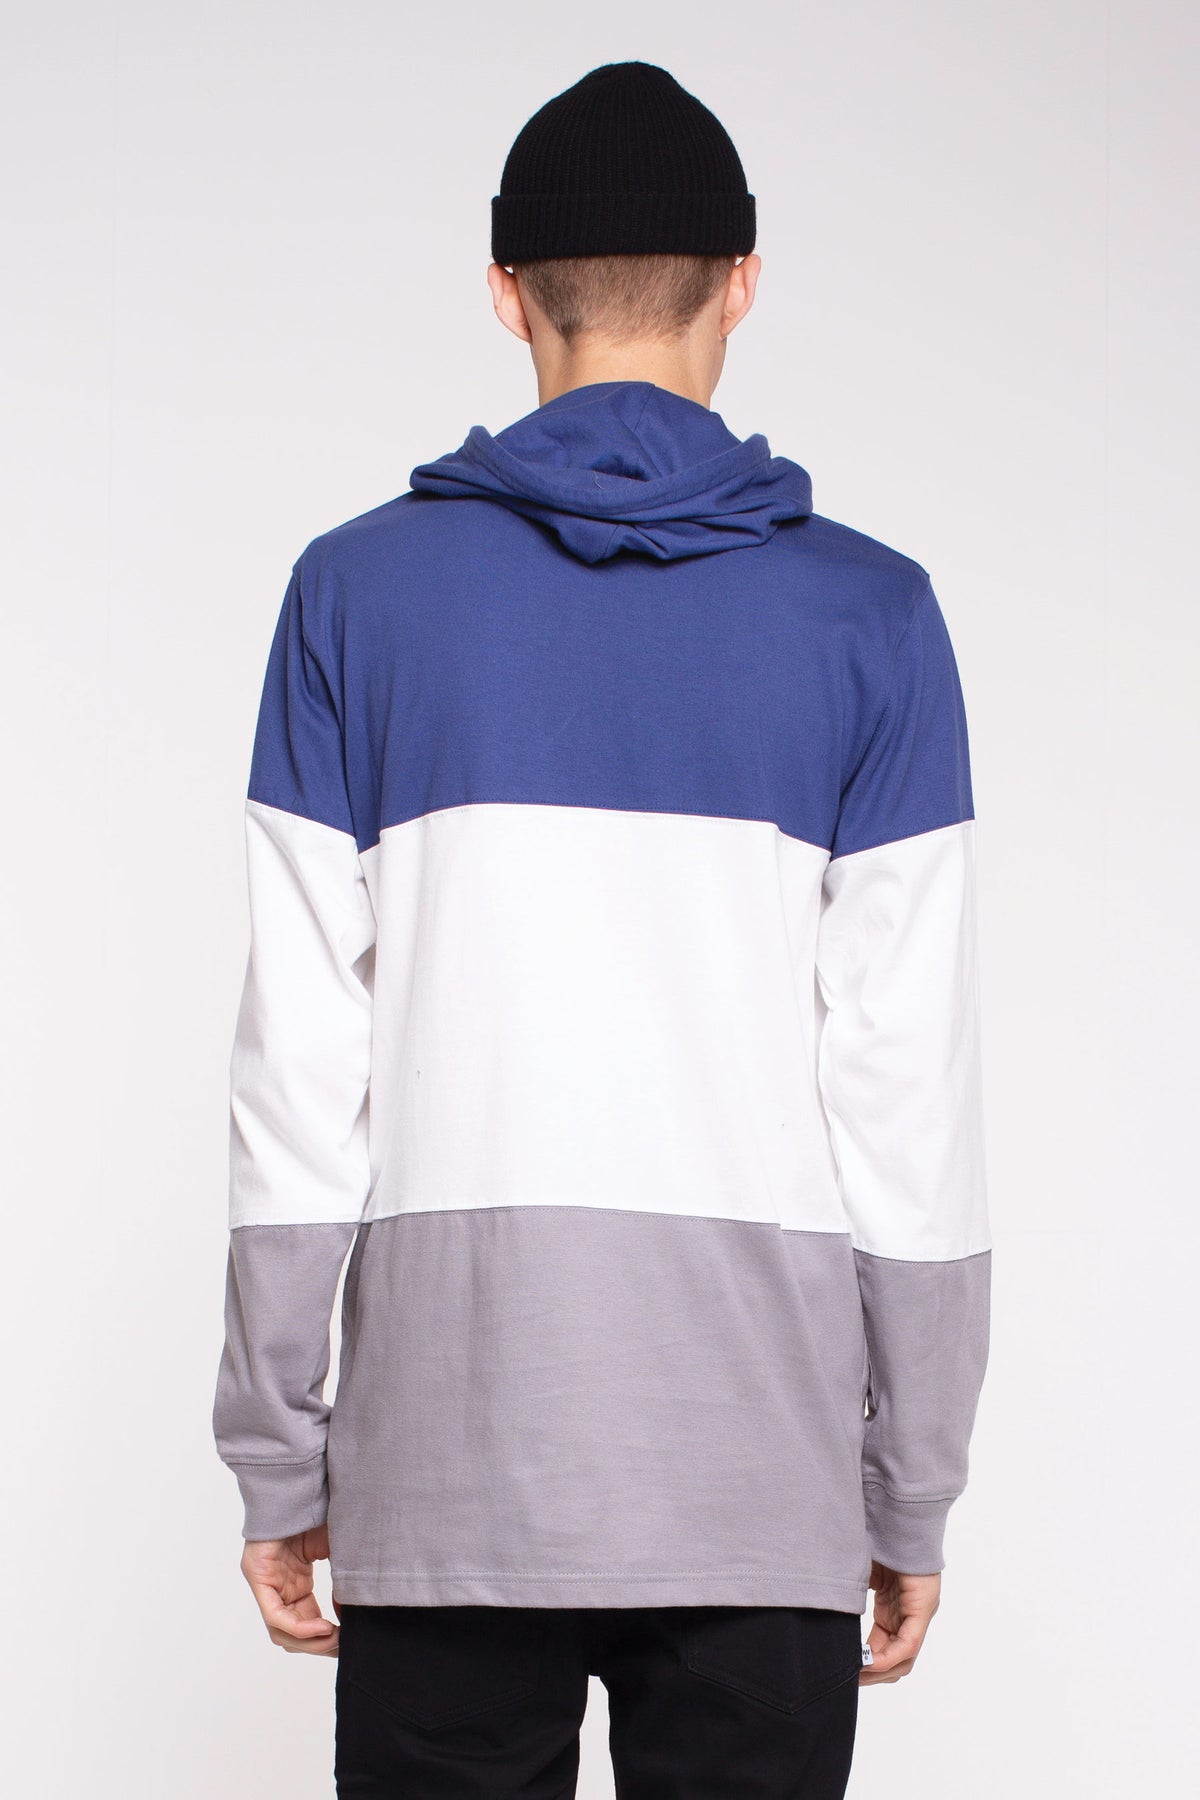 Irving Panel L/S Tee- Greedo - Blue/White Grey Panel